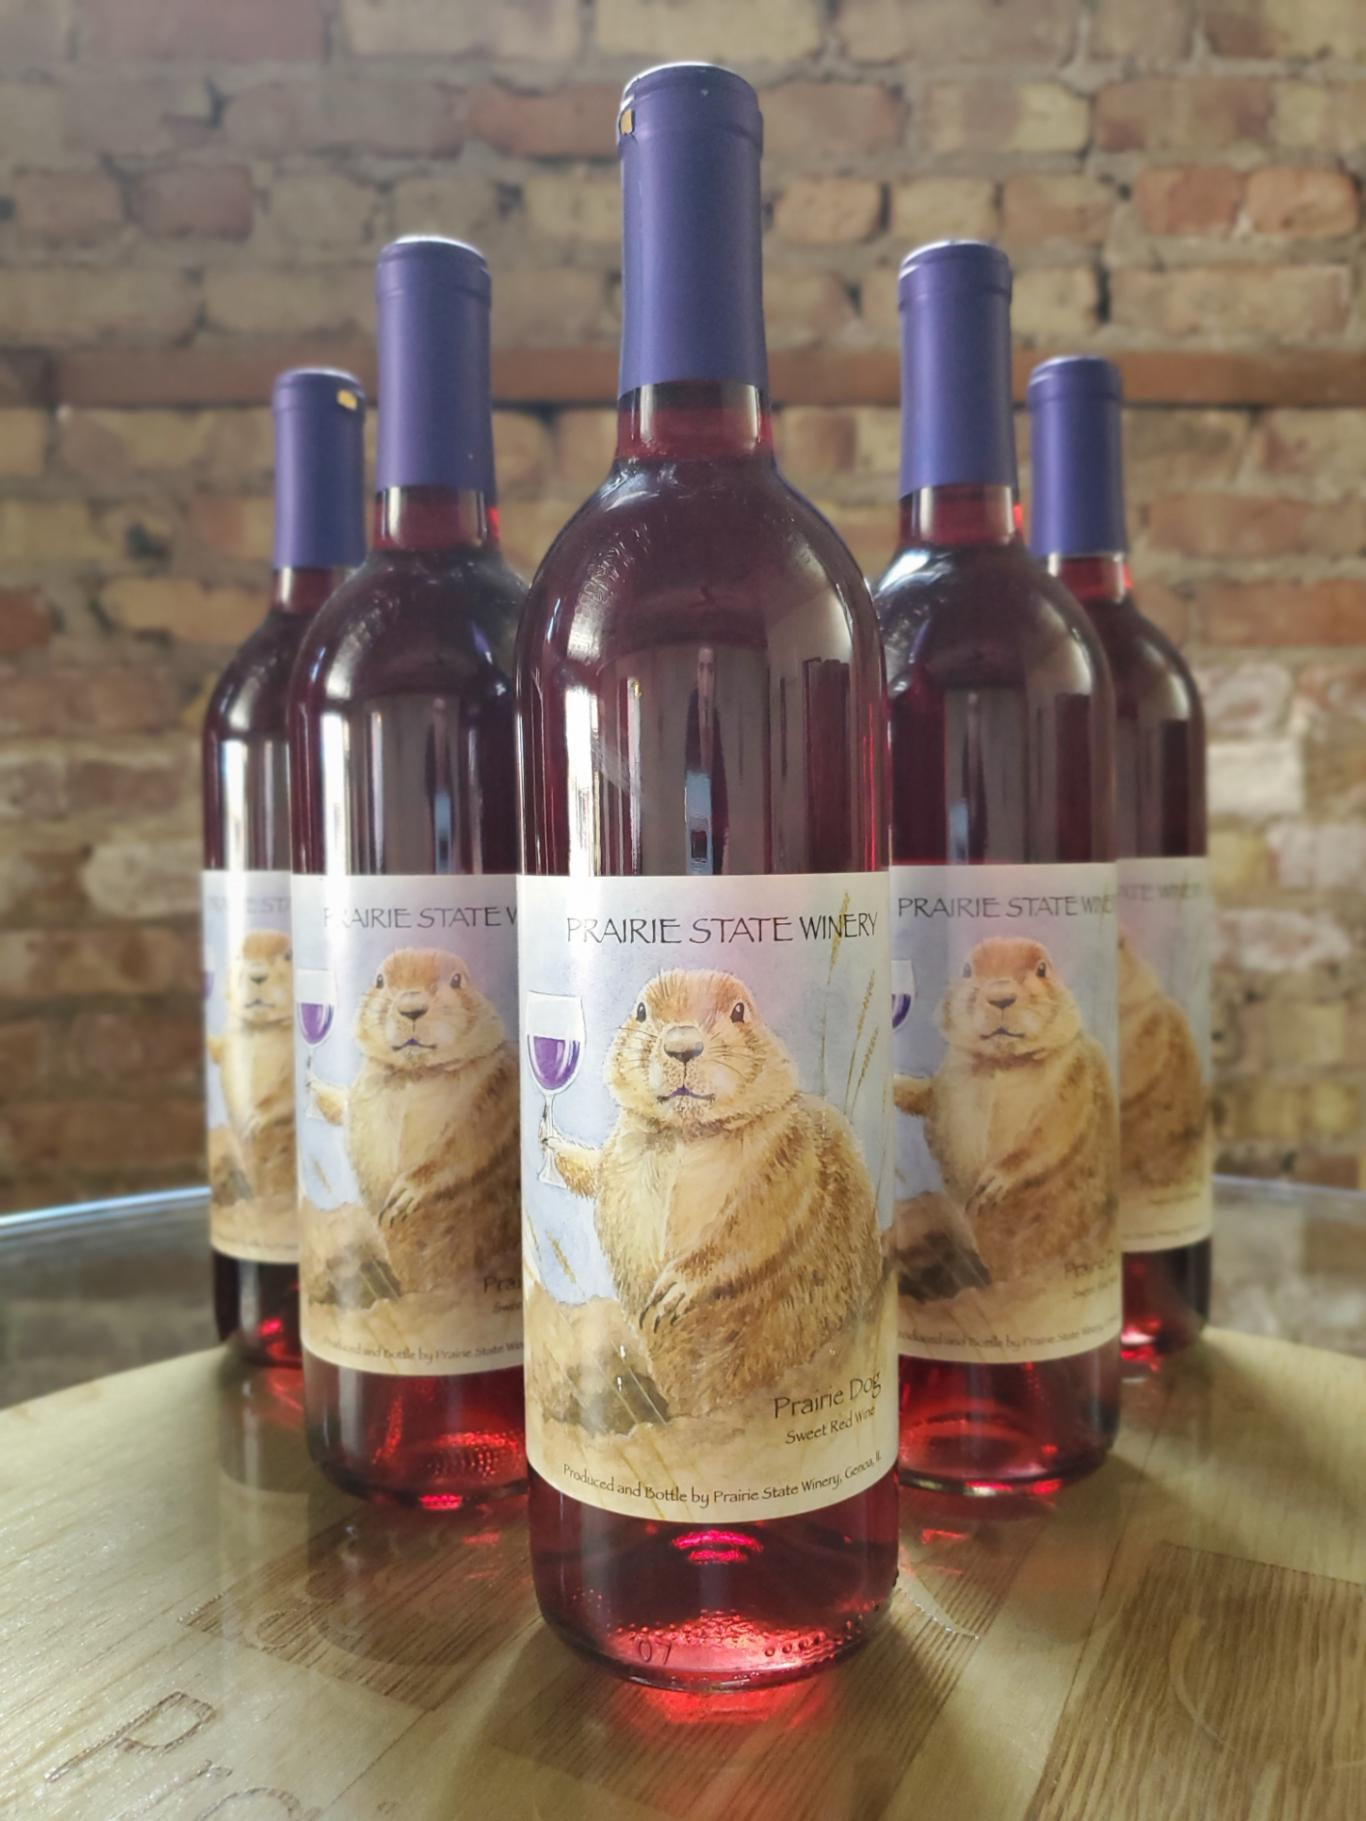 Product Image for Prairie Dog